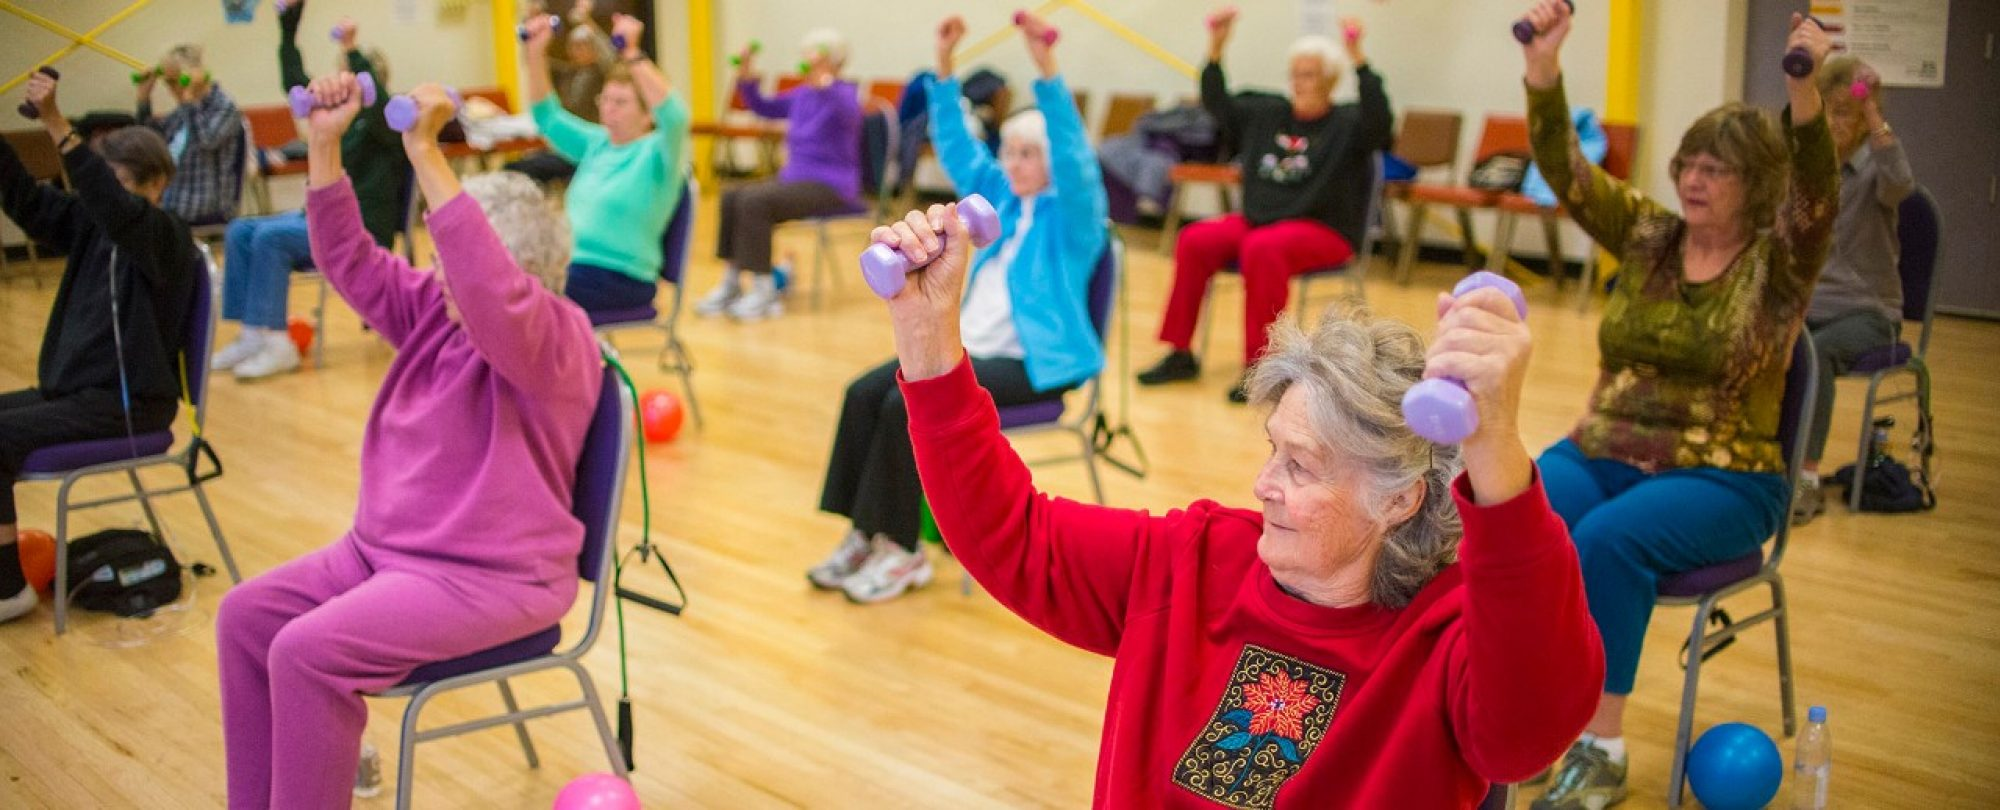 Tai Chi class for adults age 50+